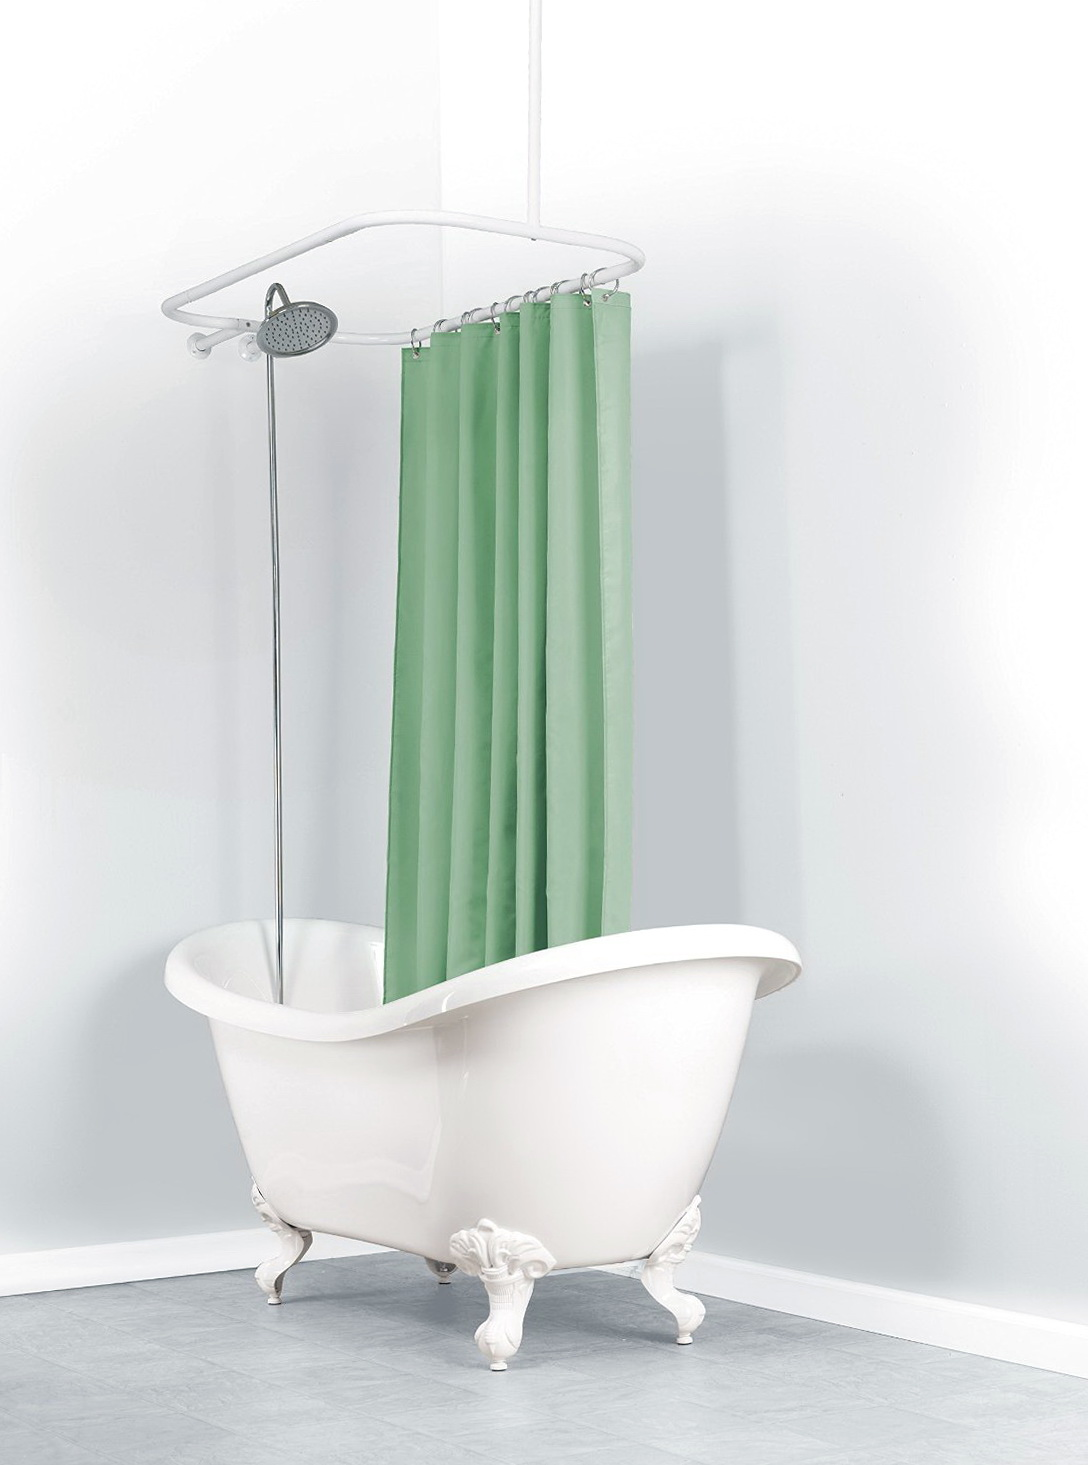 Ceiling Mount Shower Curtain Rod Clawfoot Tub